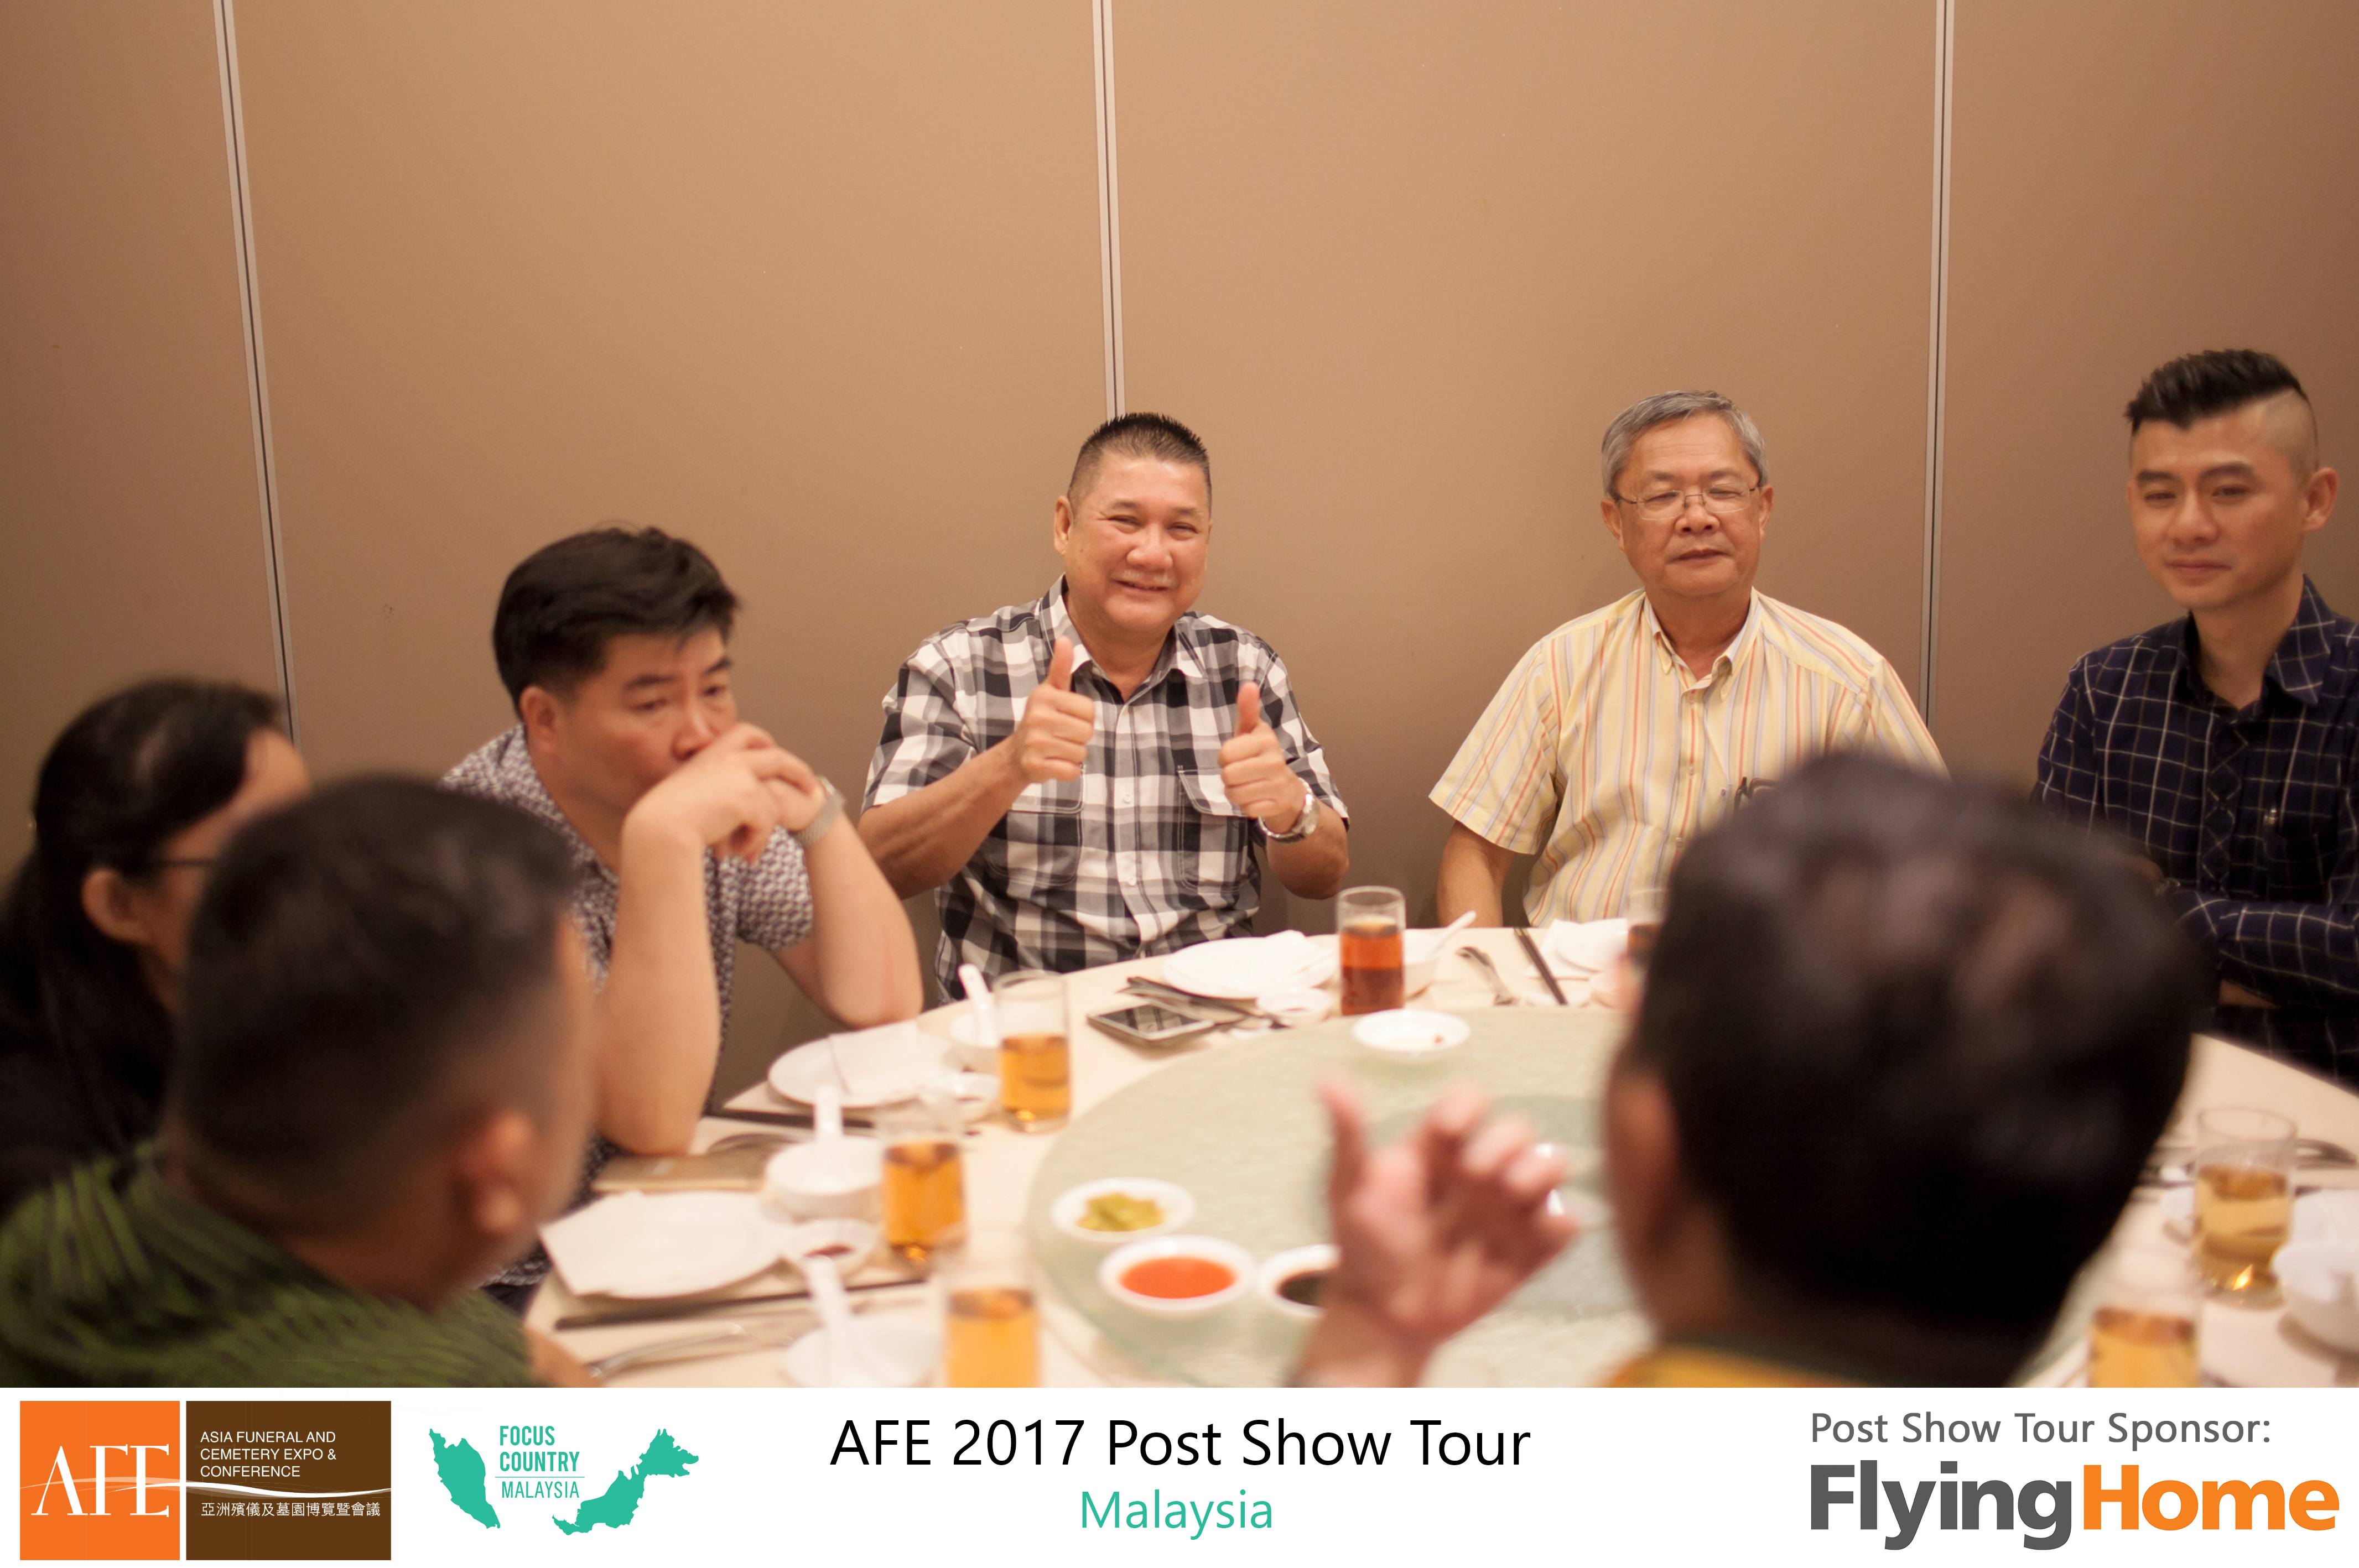 AFE Post Show Tour 2017 Day 1 - 39